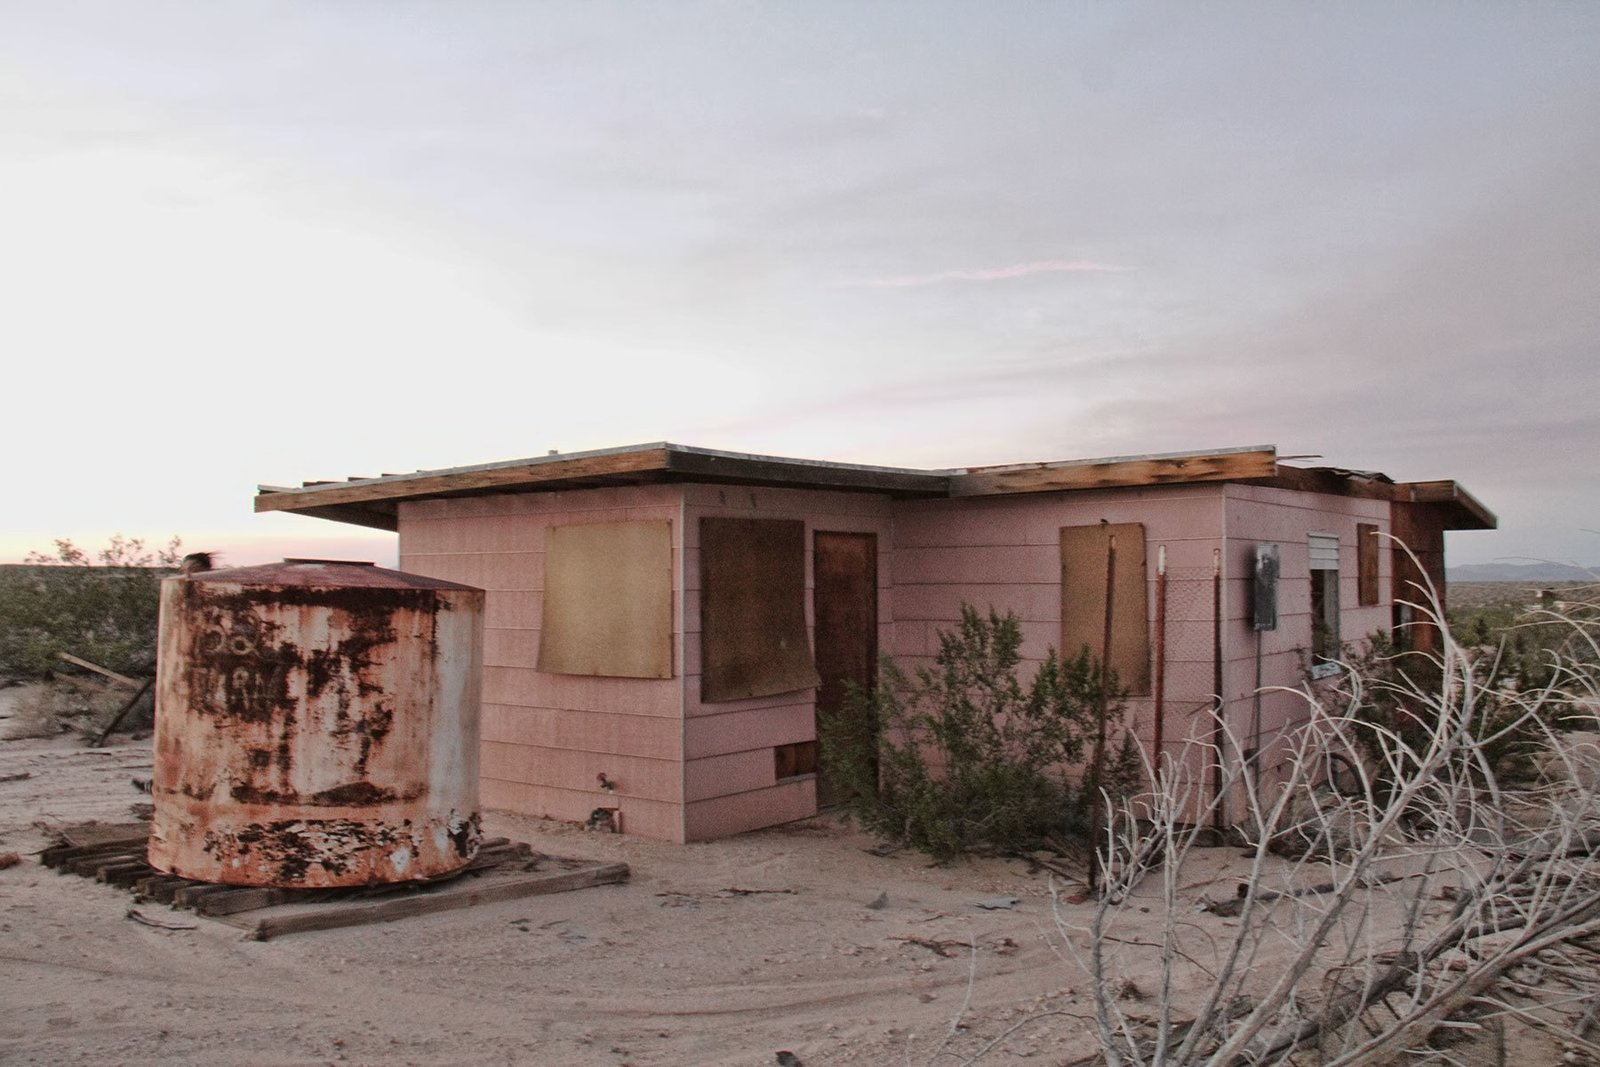 The condition of the home when the Smirkes purchased it in 2015.